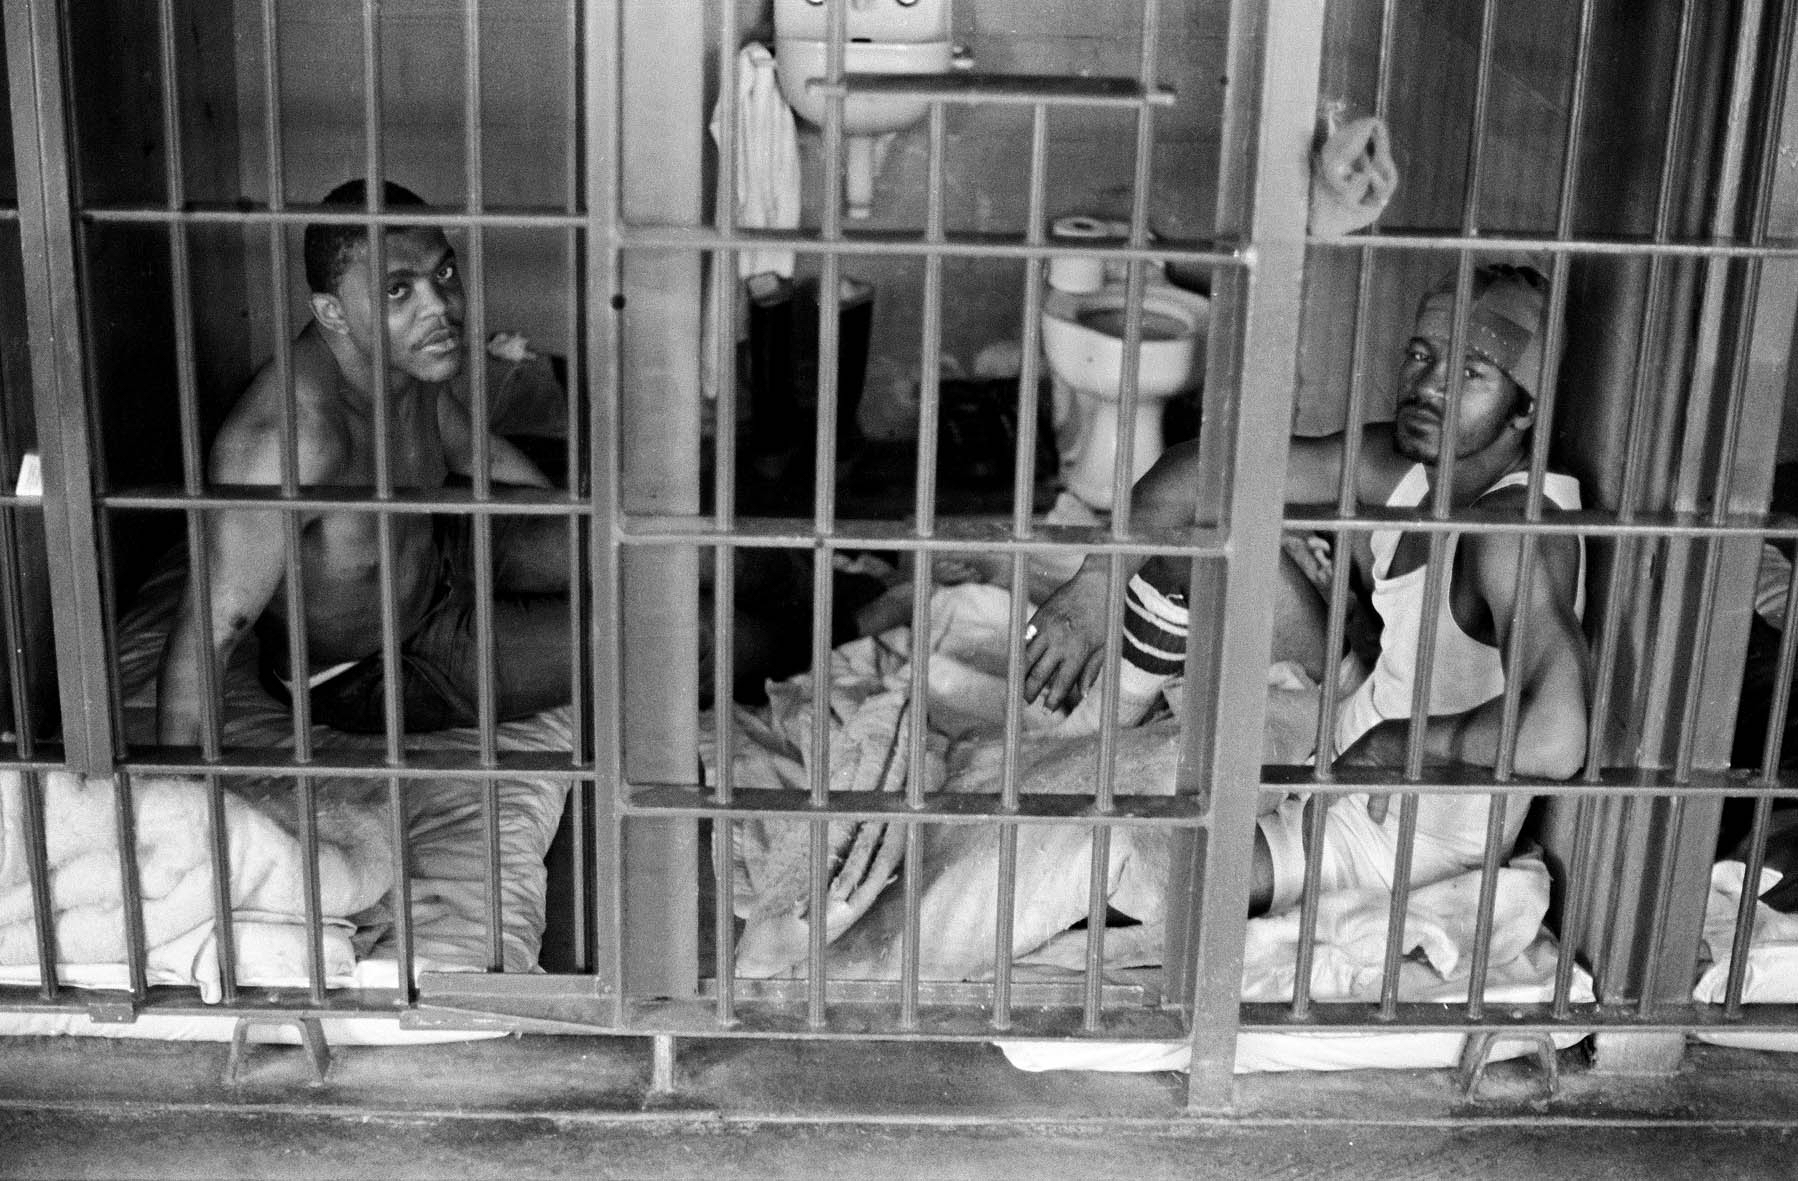 Keith Calhoun. TWO TO A SIX-BY-EIGHT-FOOT CELL AT ANGOLA PRISON, 1980.